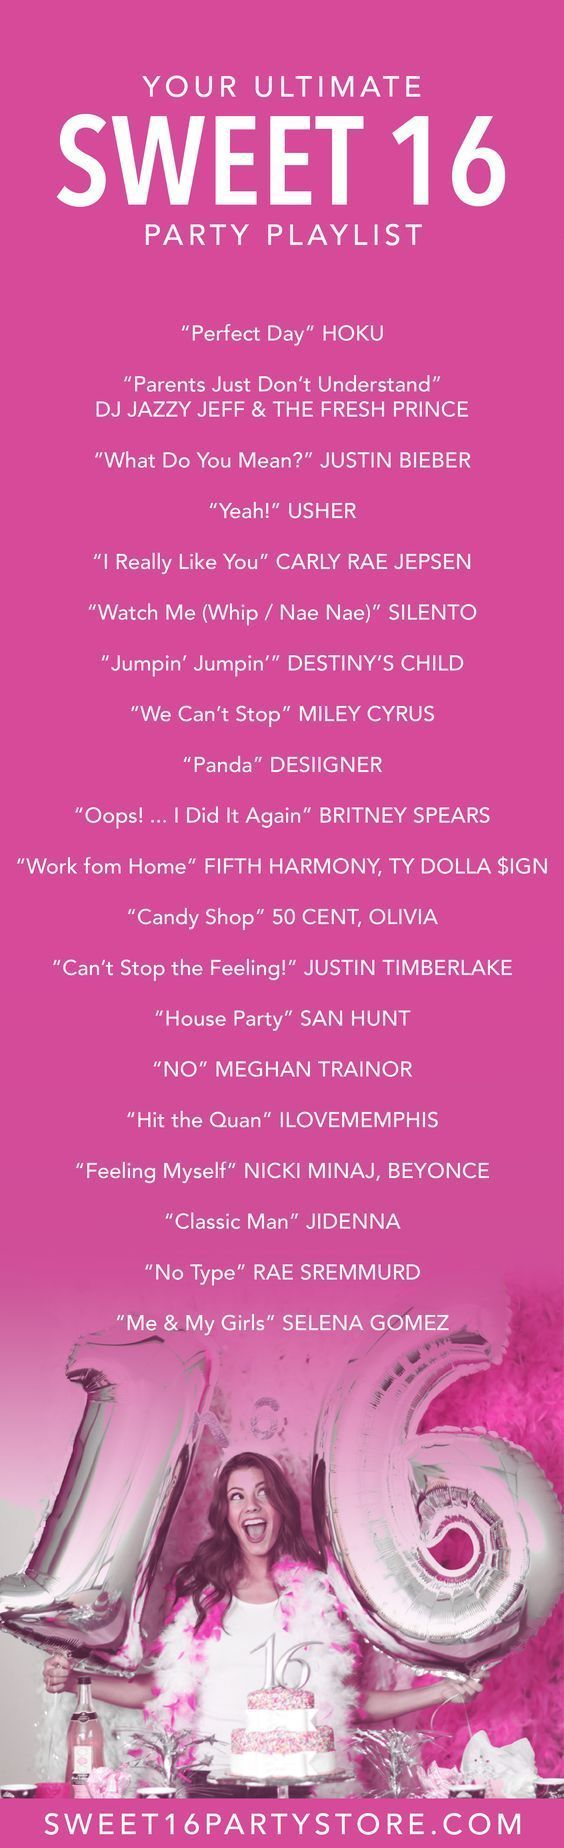 The ULTIMATE Sweet 16 Party Playlist from Sweet 16 Party Store!   - SWEET 16 PARTY IDEAS -